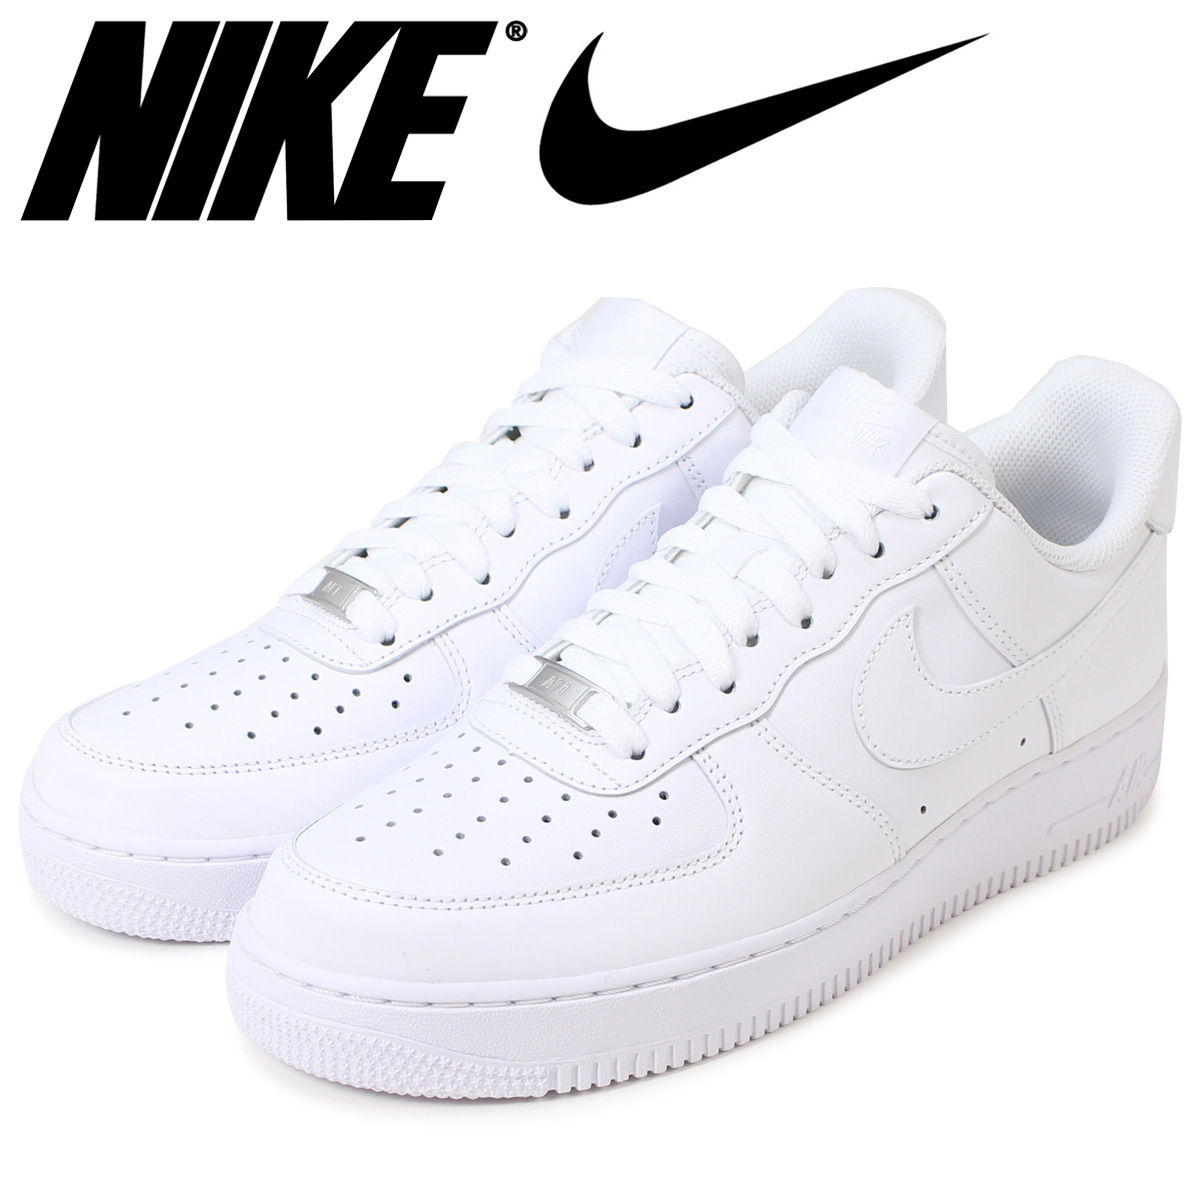 on sale 27cc9 a8176 Nike NIKE AIR FORCE 1 LOW 07 315122-111 sneakers air force 1 Lo leather  mens air force white 2  20 new in stock regular